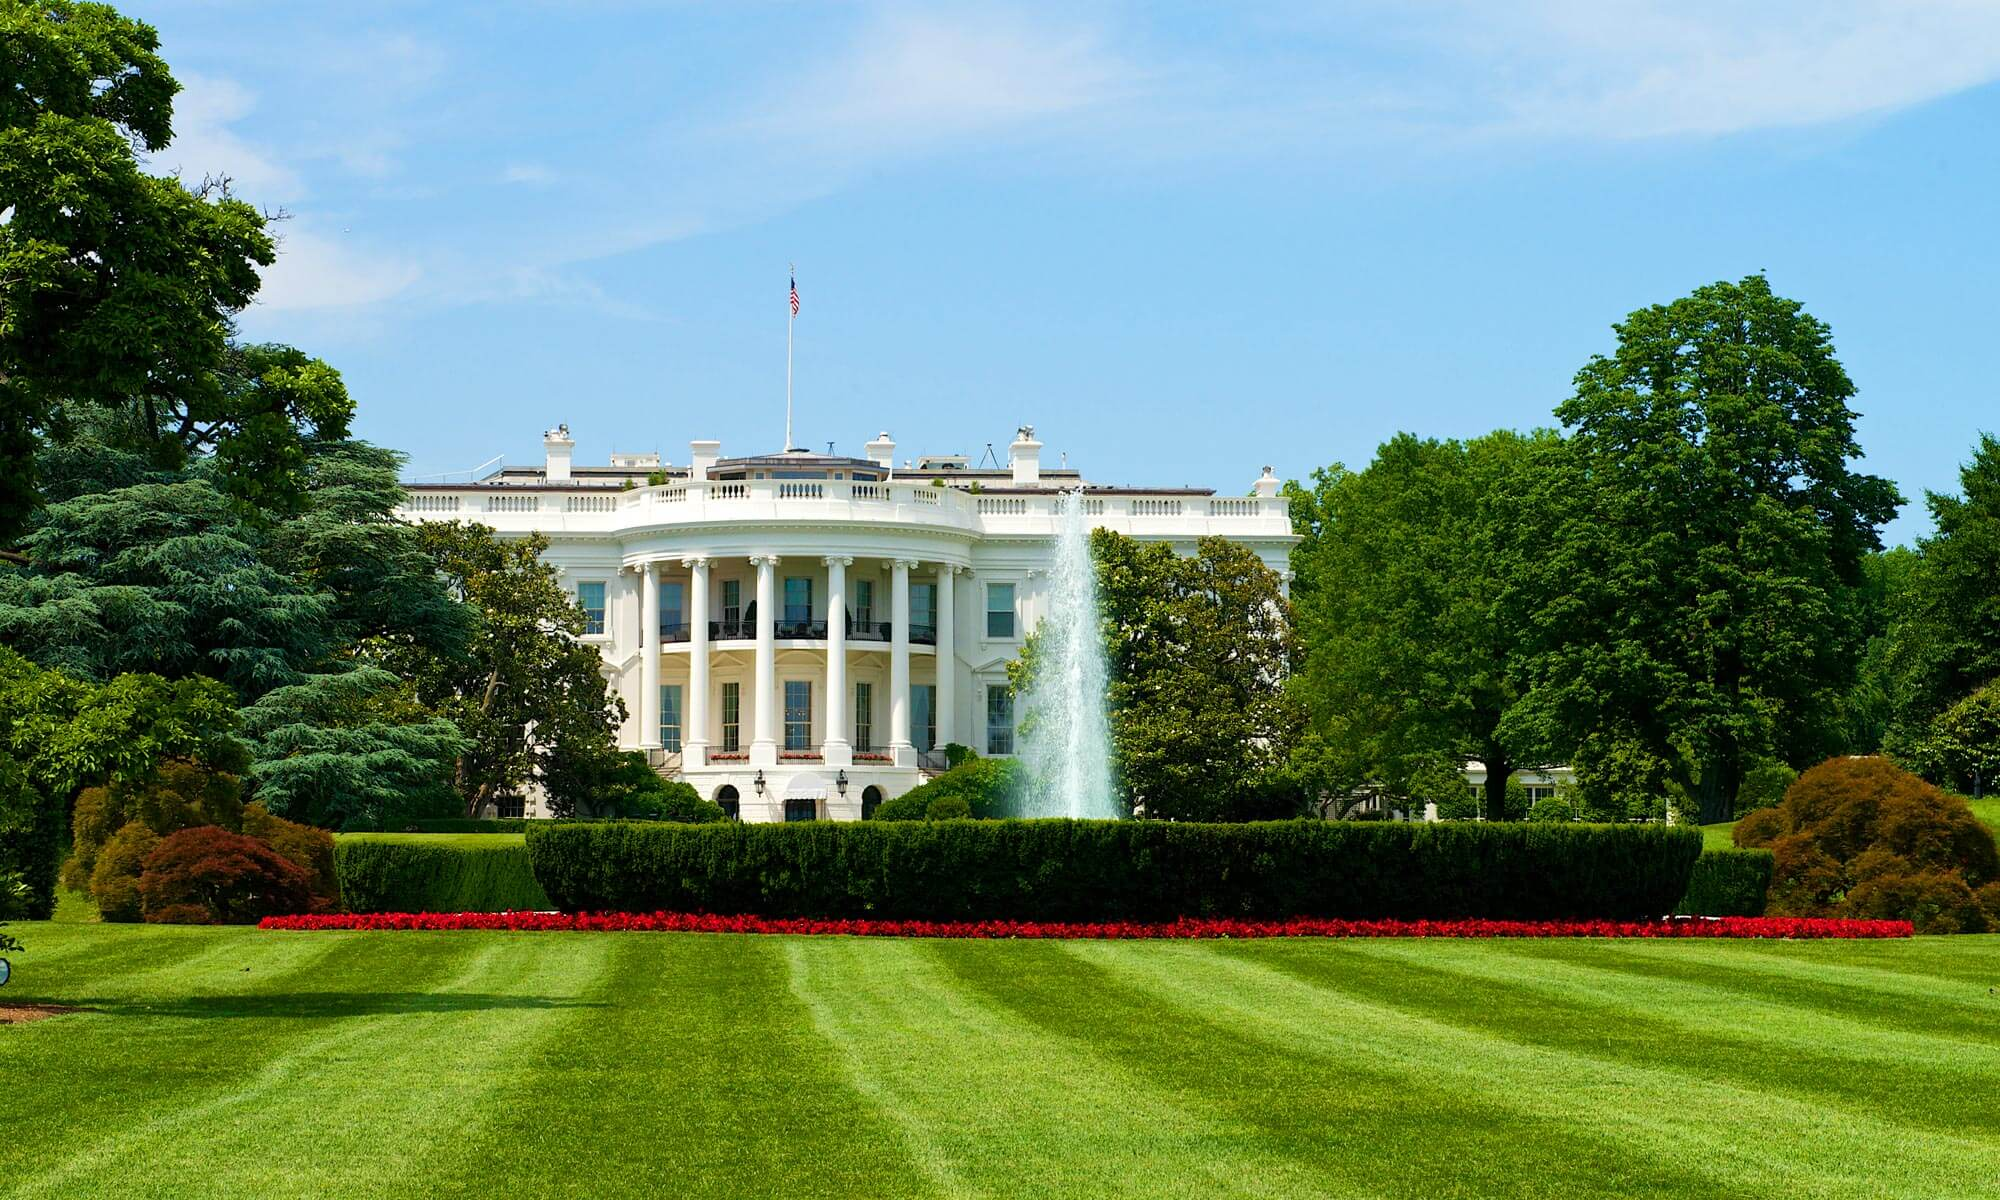 A view of the White House taken from the North Lawn where a fountain can be seen in Washington DC